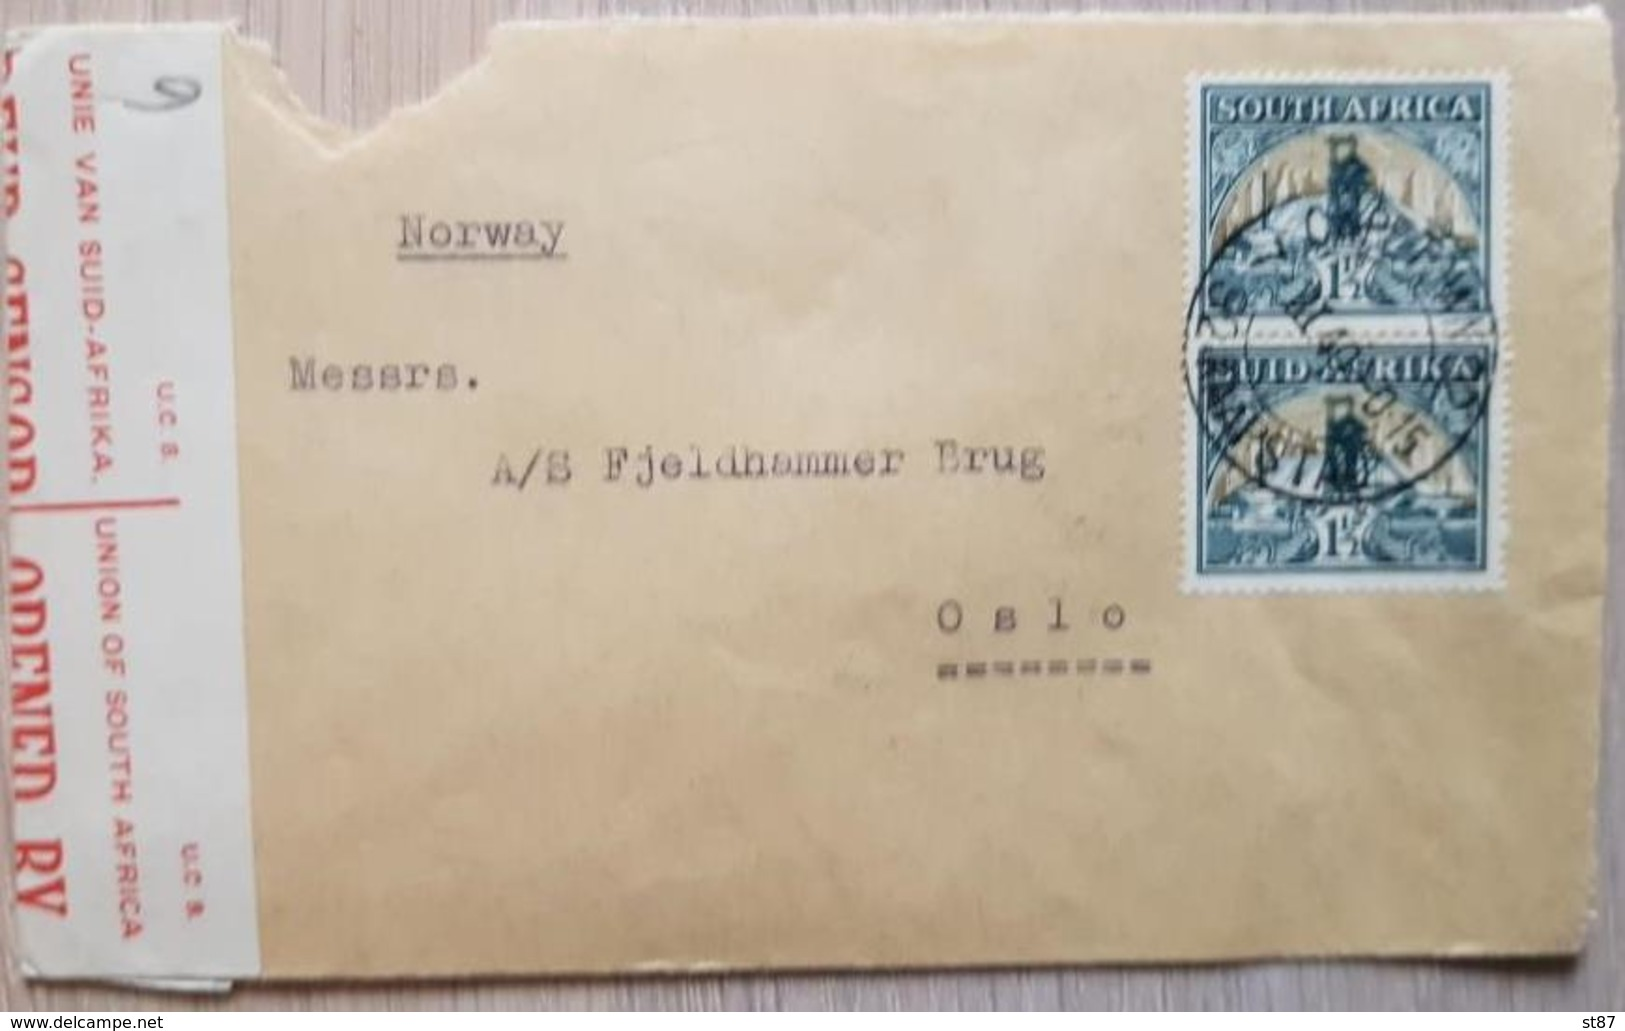 South Africa 1940 Censored Norway Oslo - Unclassified